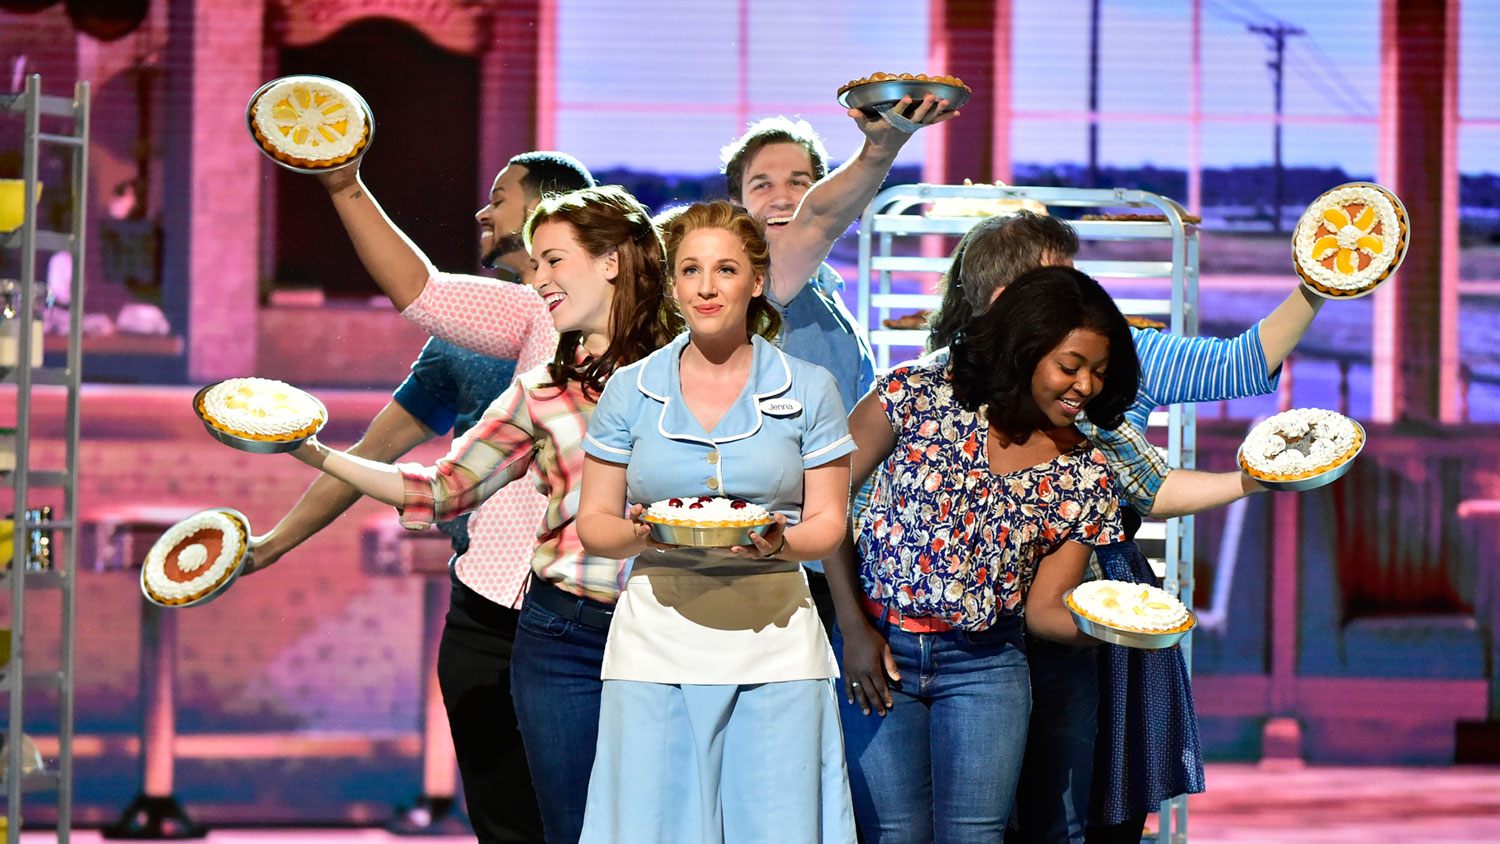 waitress, the musical